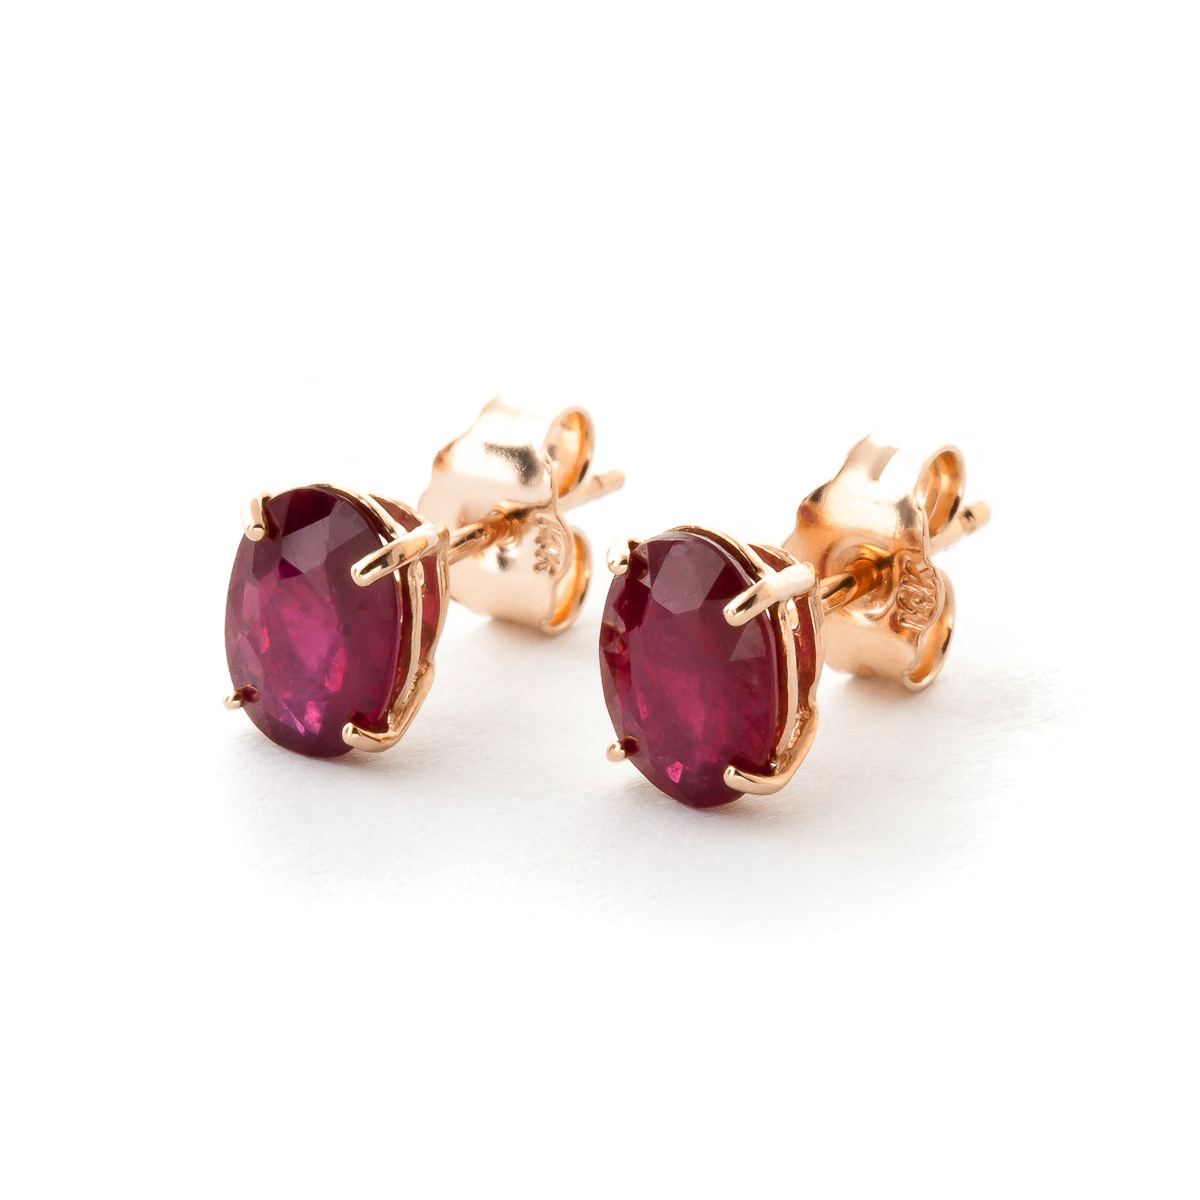 Ruby Stud Earrings 1.8 ctw in 9ct Rose Gold